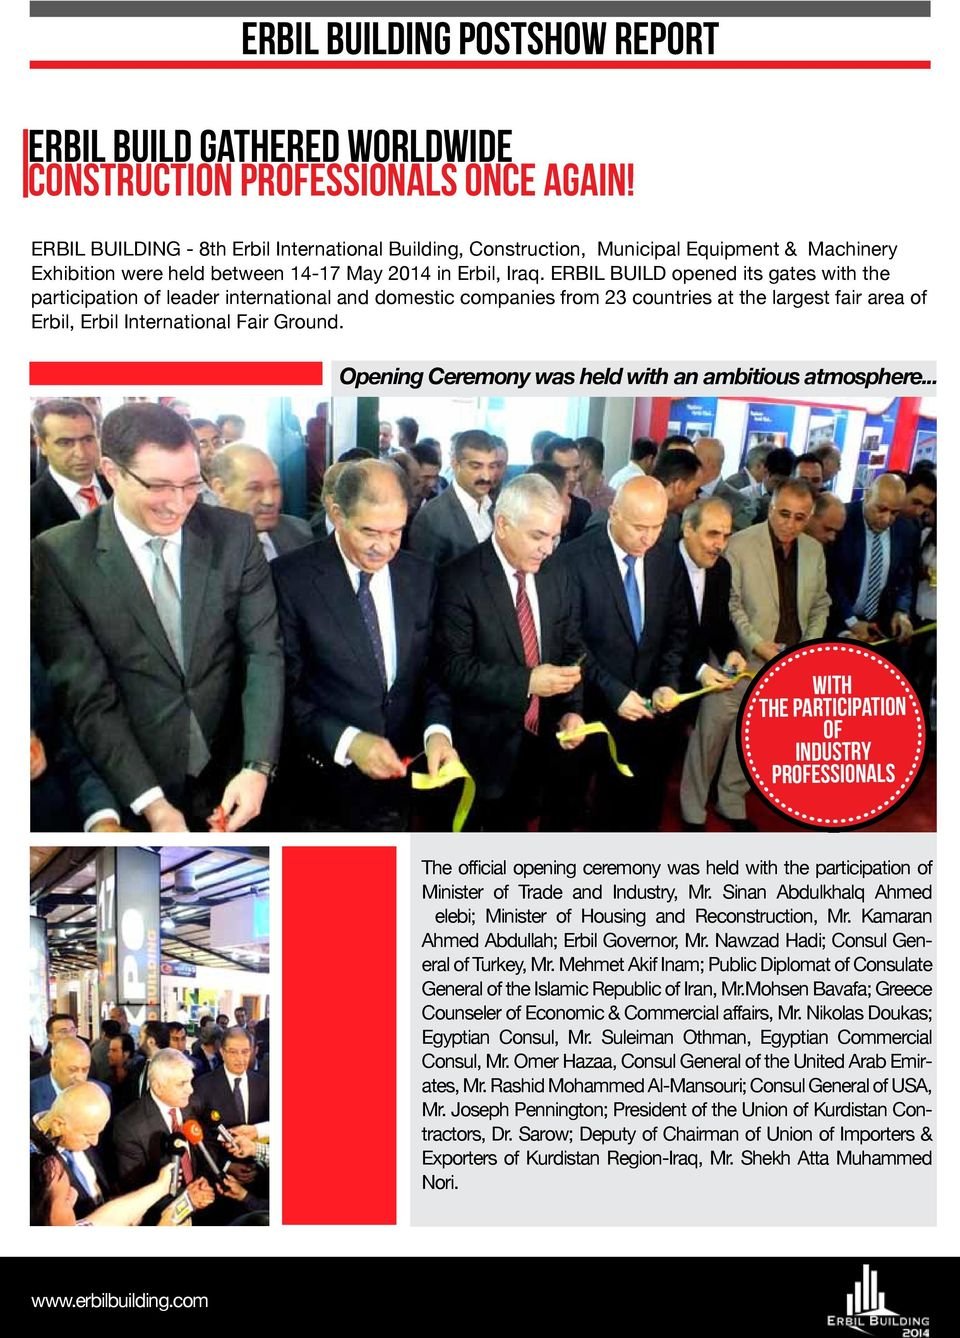 ERBIL BUILD opened its gates with the participation of leader international and domestic companies from 23 countries at the largest fair area of Erbil, Erbil International Fair Ground.